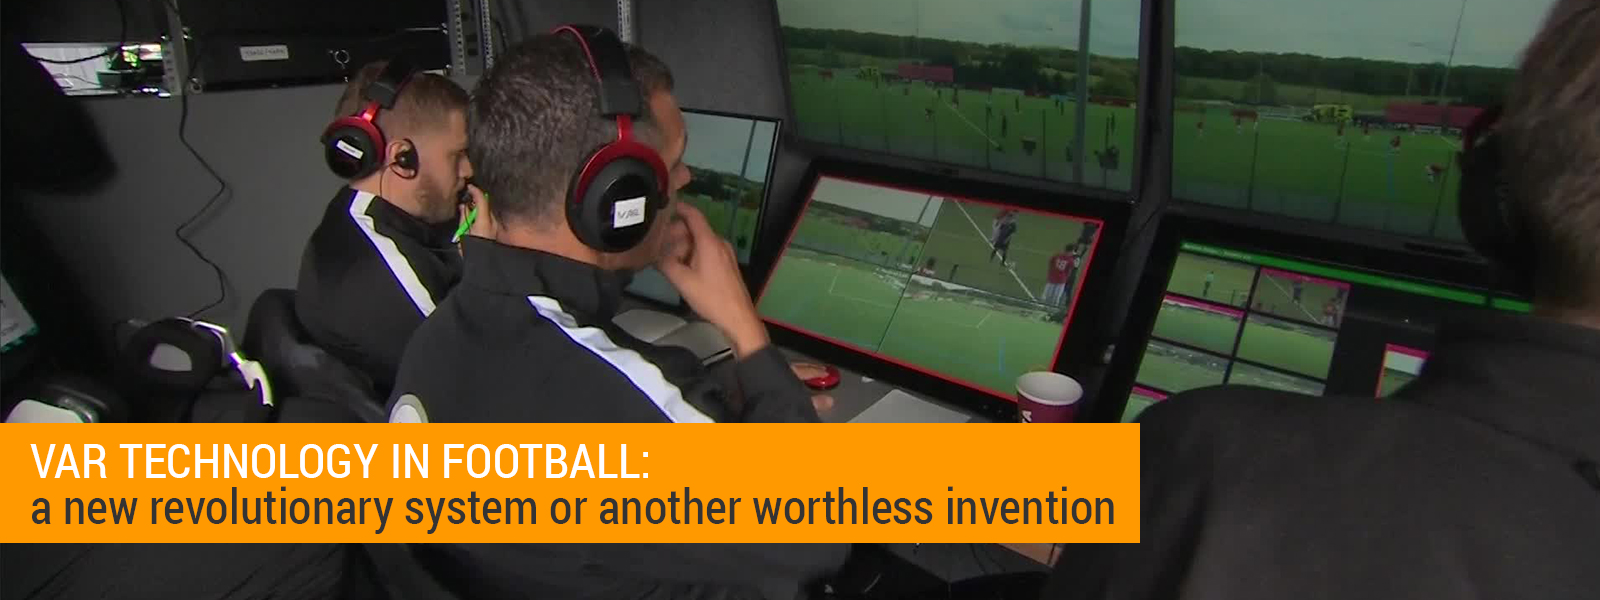 VAR Technology In Football